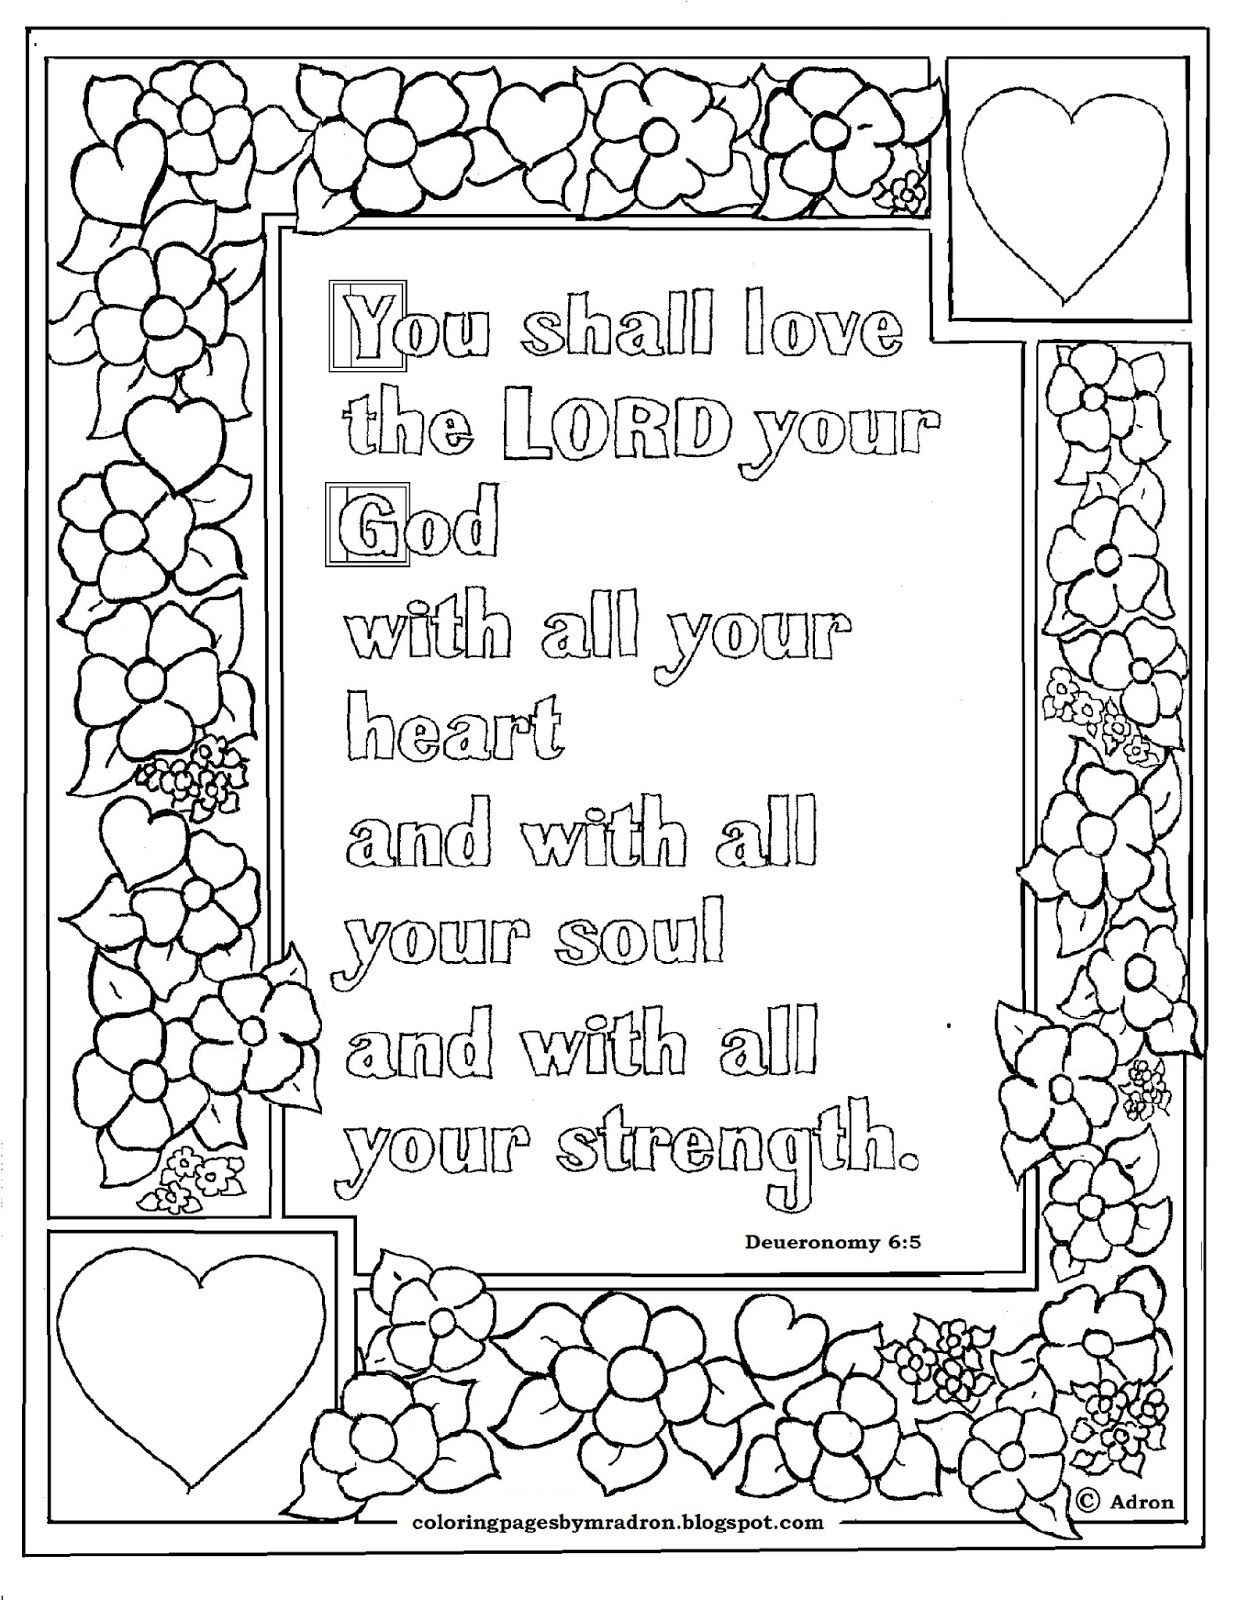 bible coloring pages free Collection-Deuteronomy 6 5 Bible verse to print and color This is a free printable Bible verse coloring page it is perfect for children and adults t 2-p